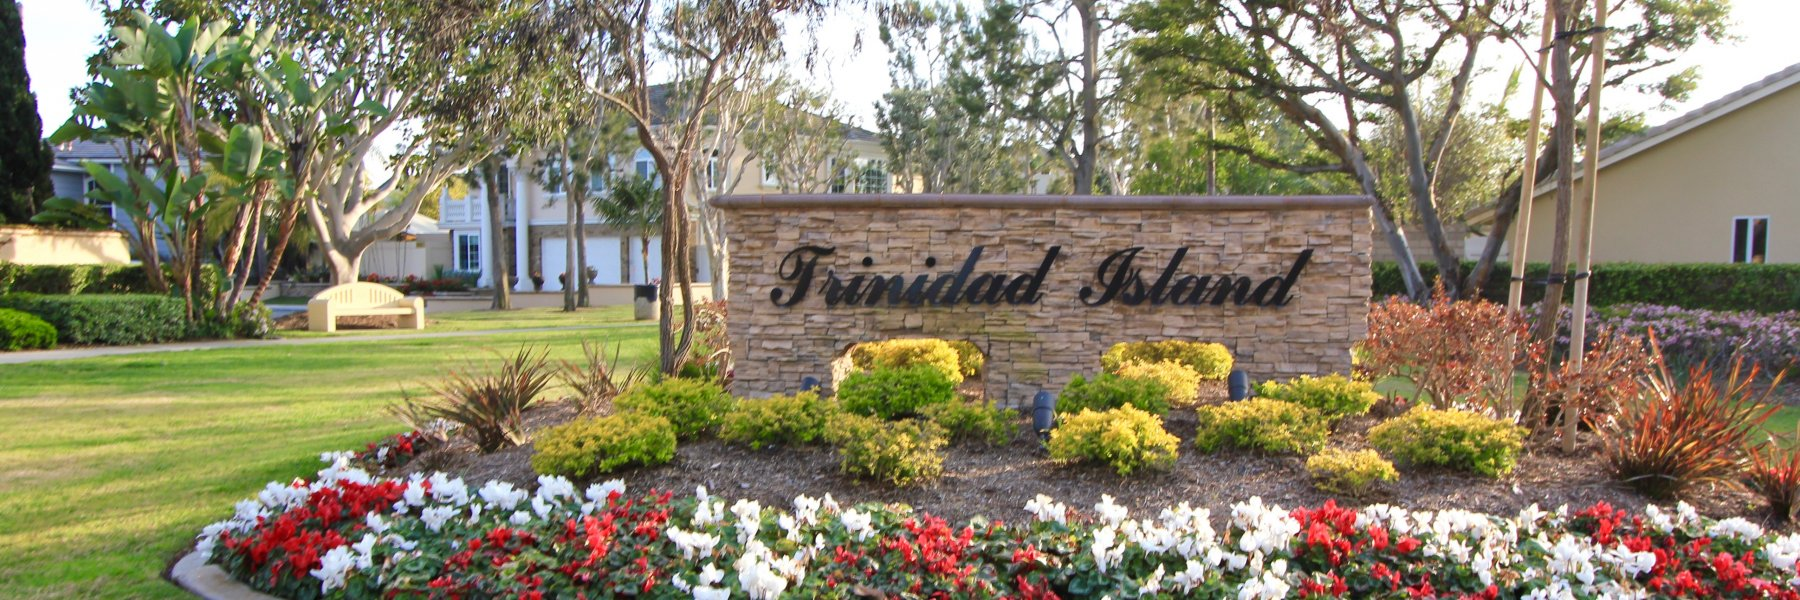 Trinidad Island is a community of homes in Huntington Beach California